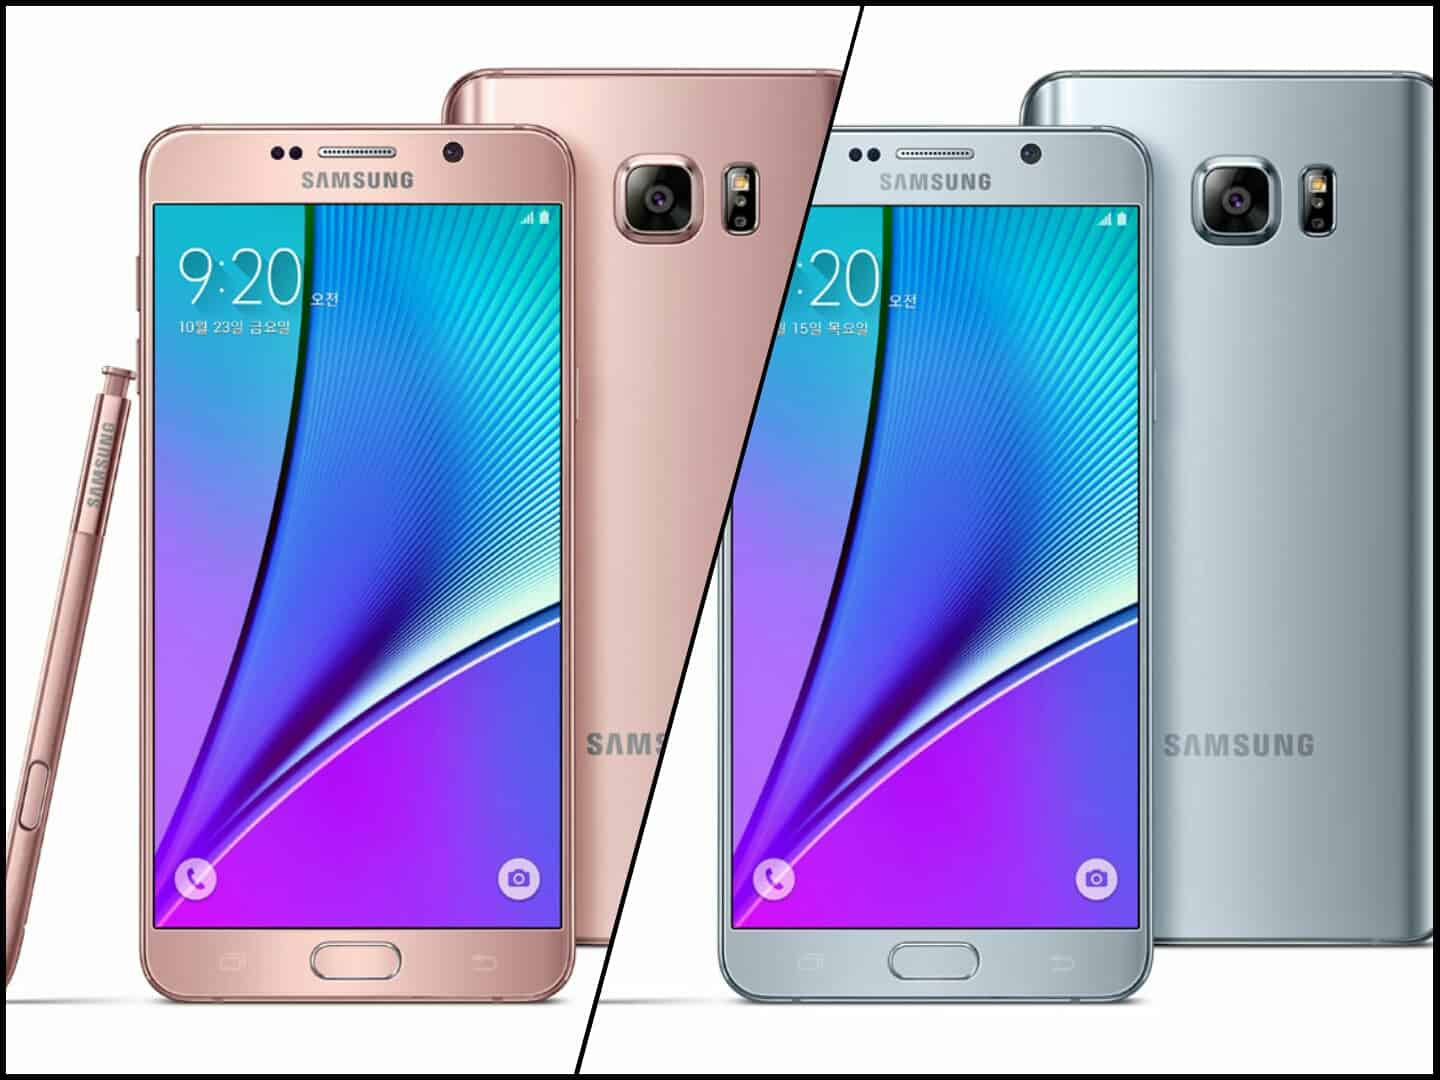 Samsung Galaxy Note 5 new color options_1